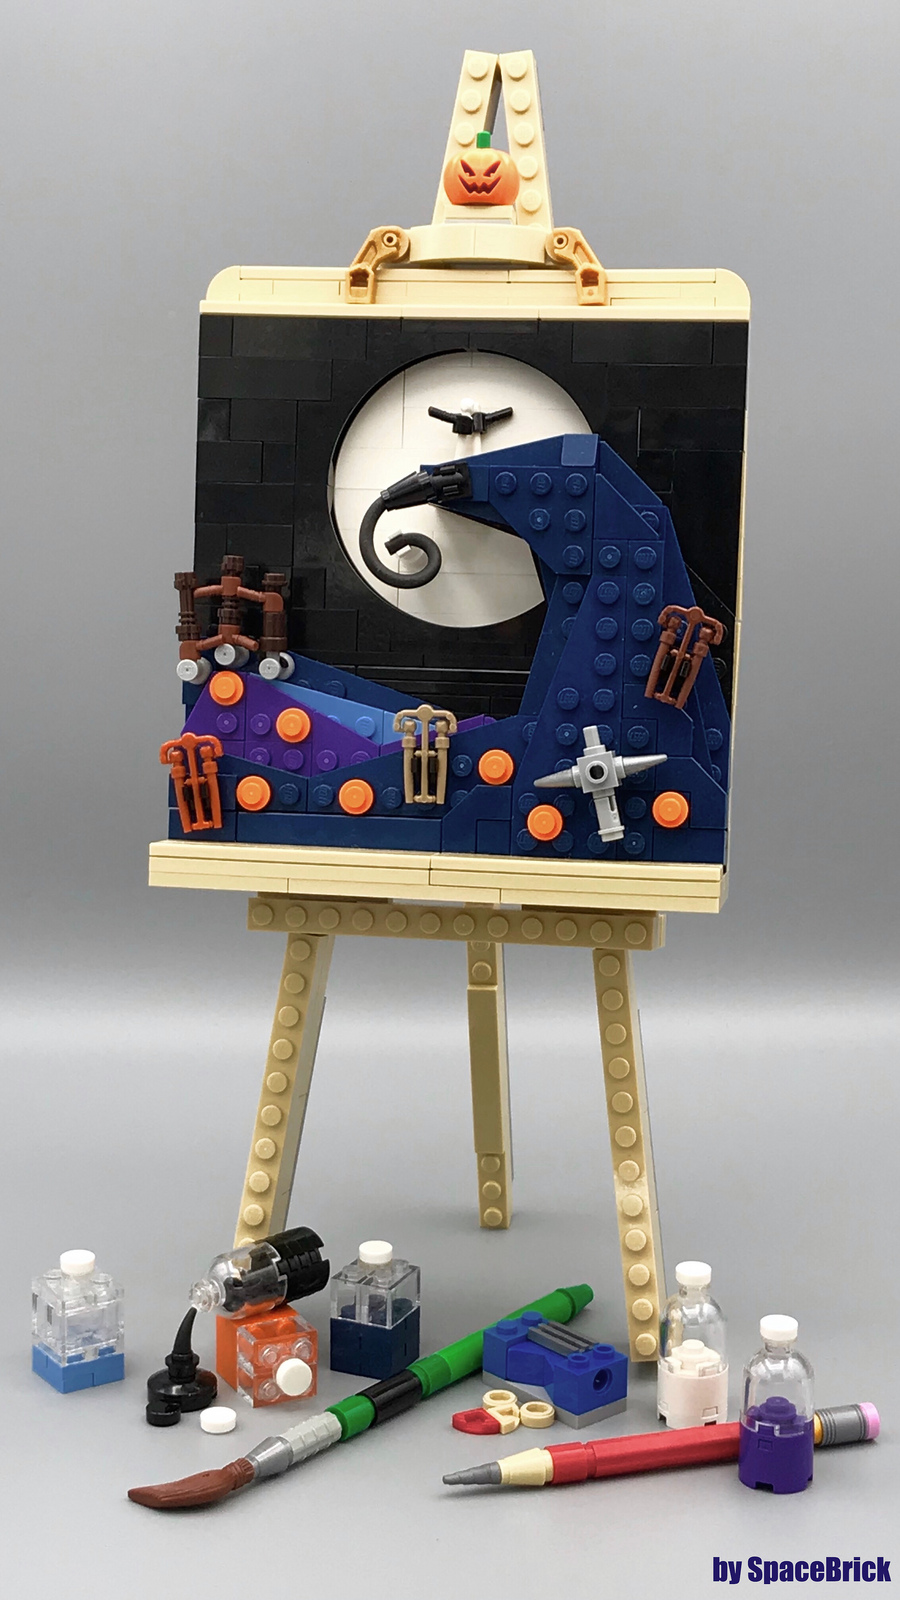 Nightmare before Christmas: Lego on Canvas